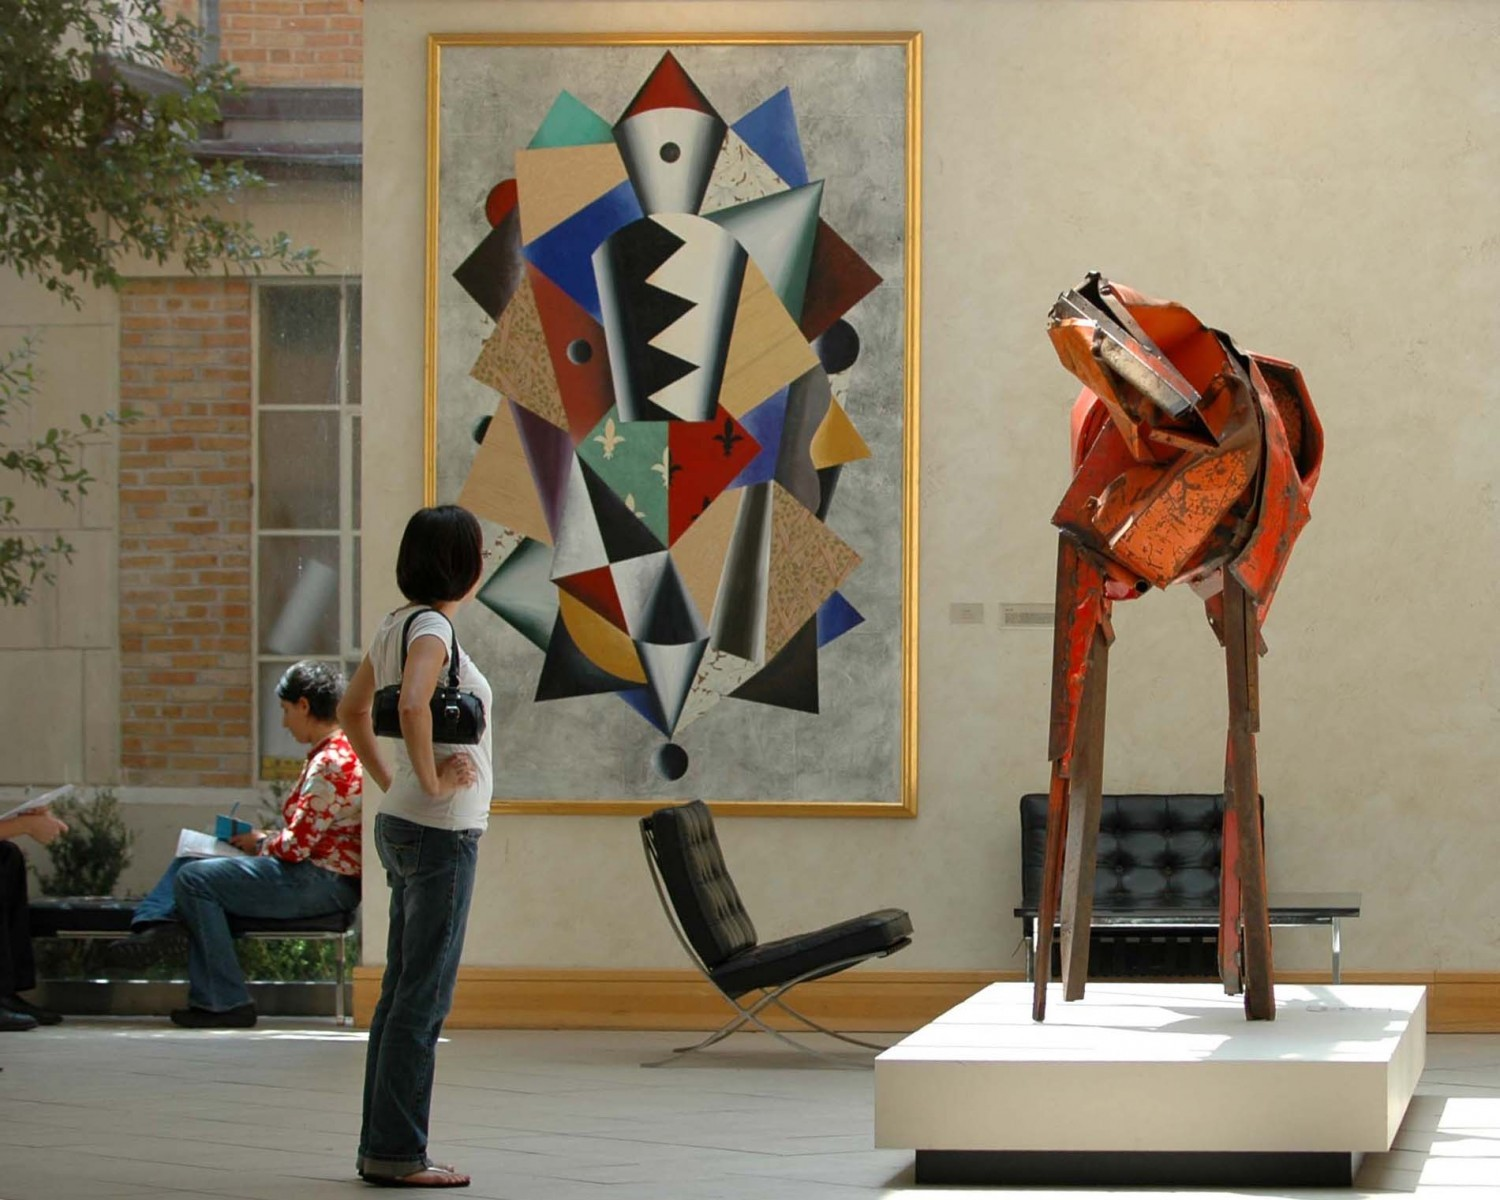 A person standing looking at a red horse sculpture indoors